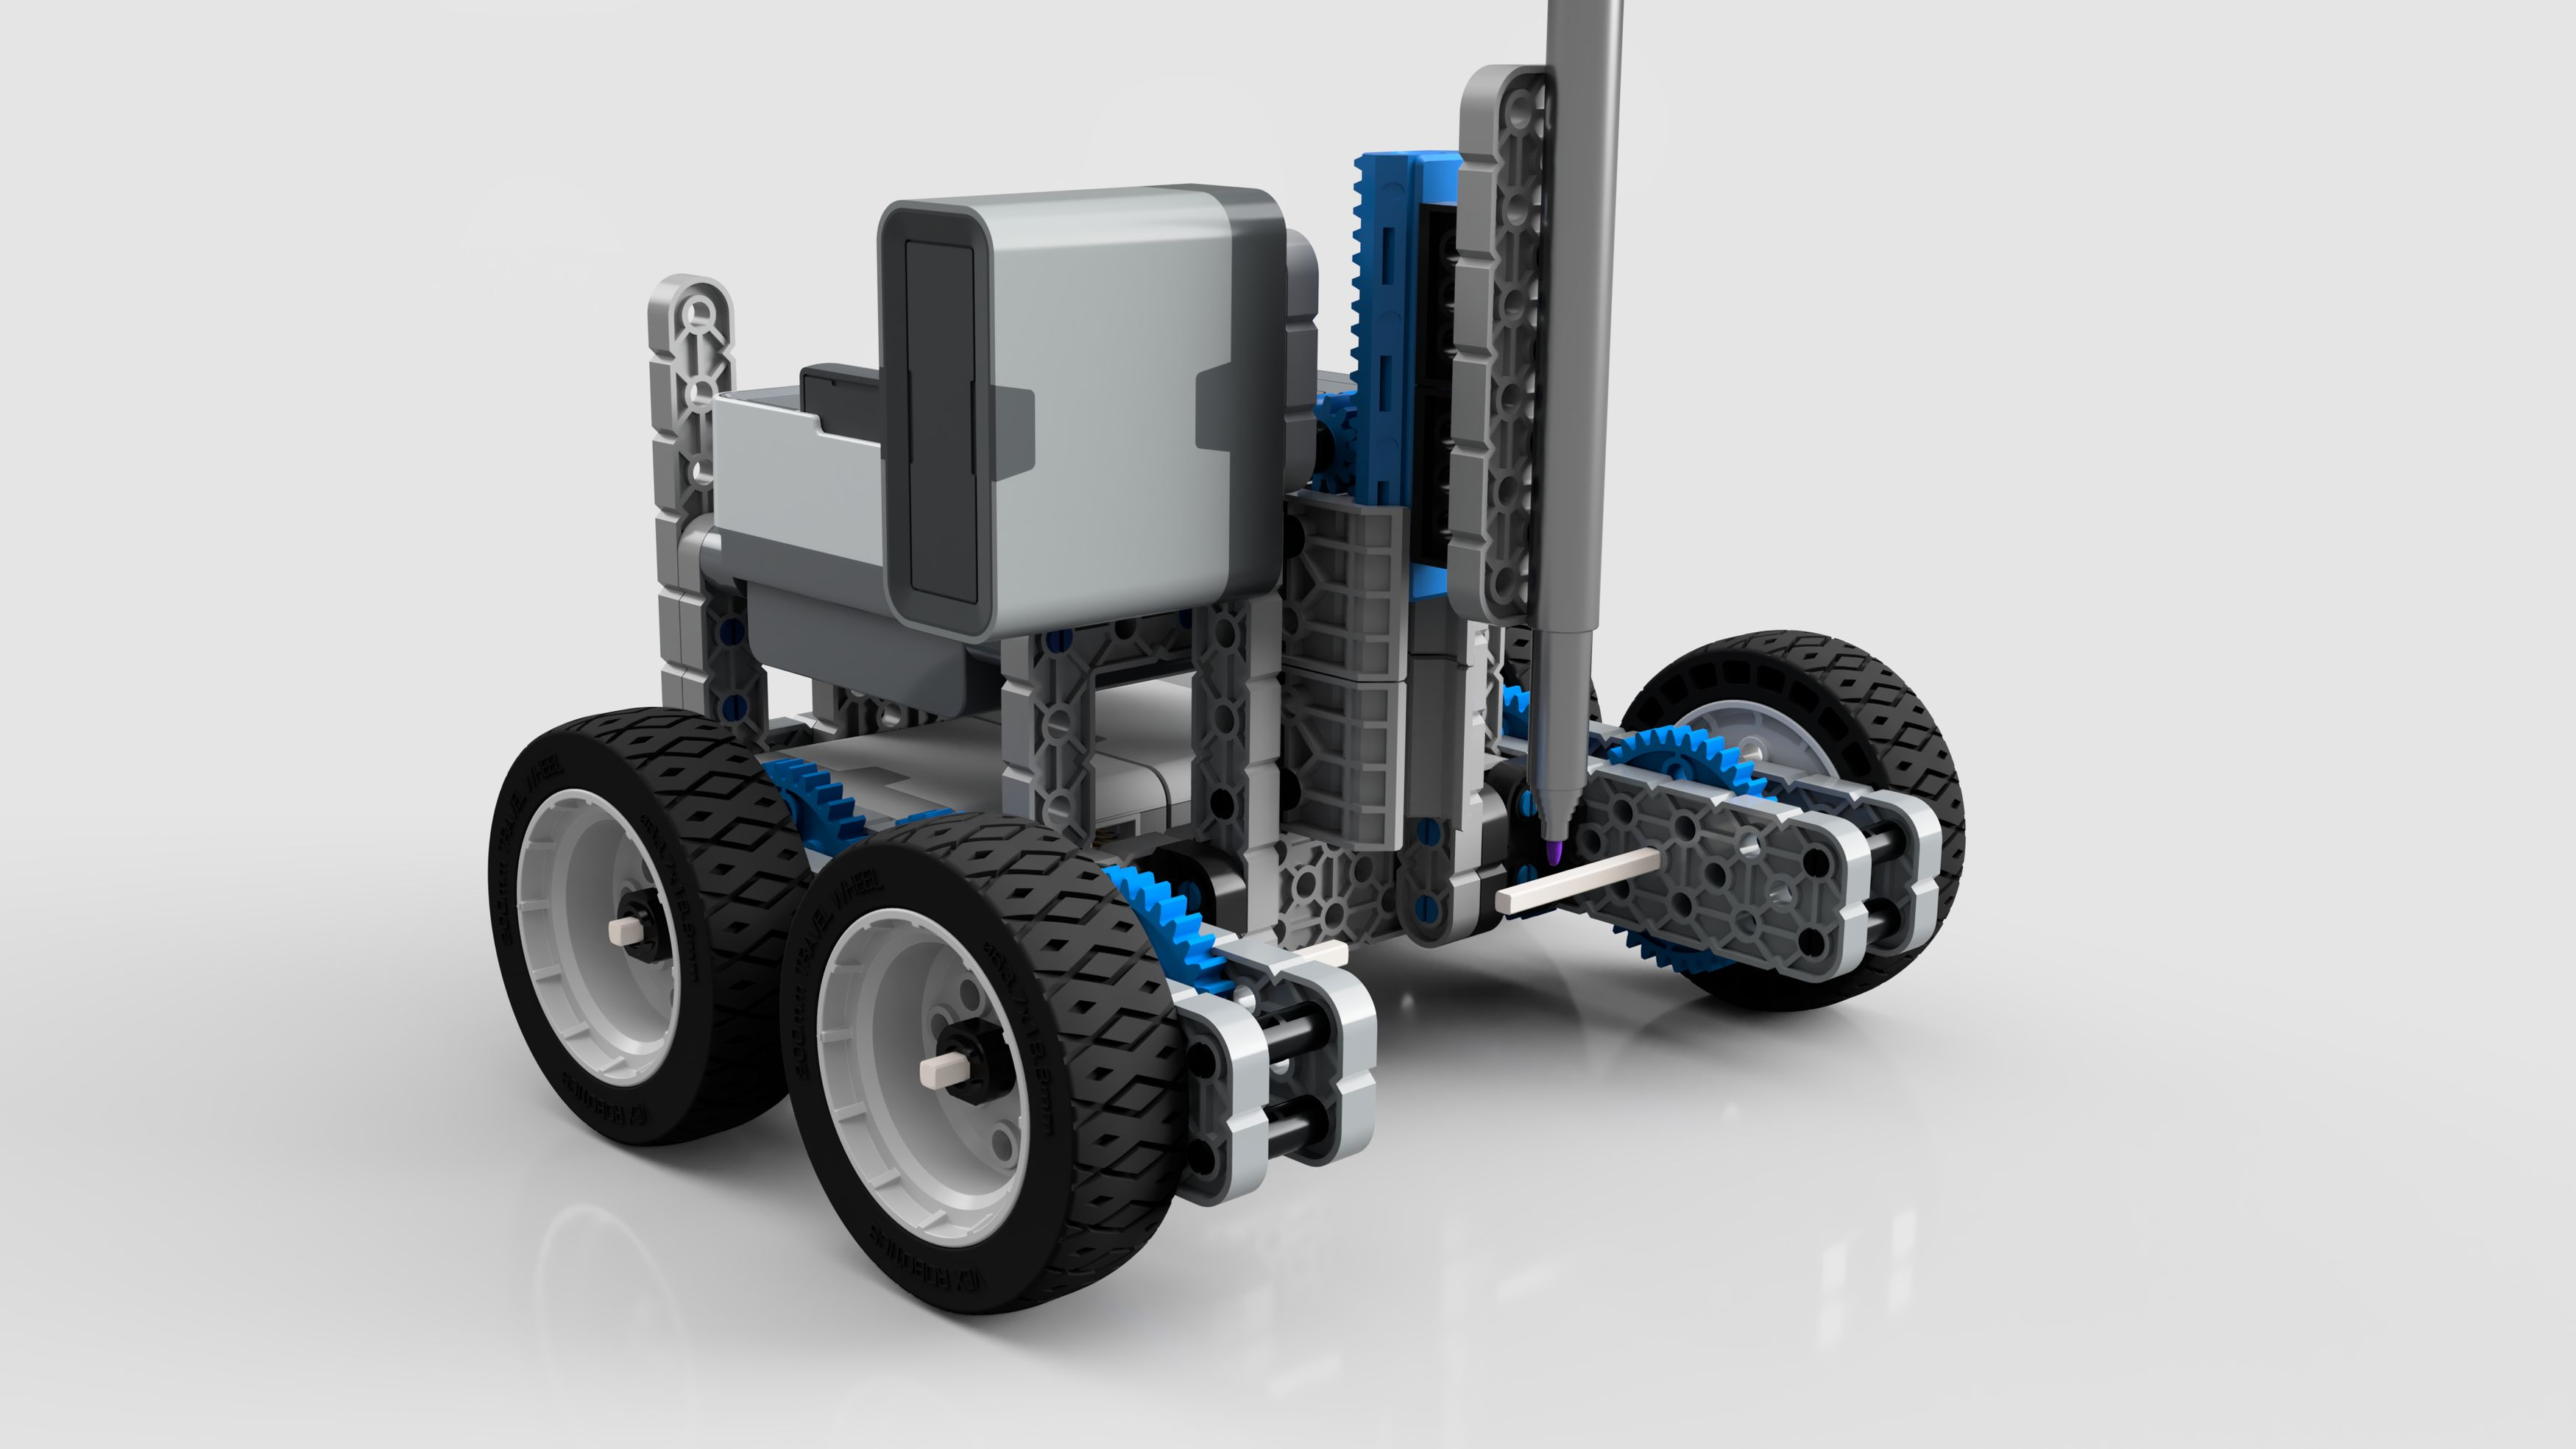 Vex-iq-robot-caneta-2020-may-21-06-21-59pm-000-customizedview17201909599-png-3500-3500